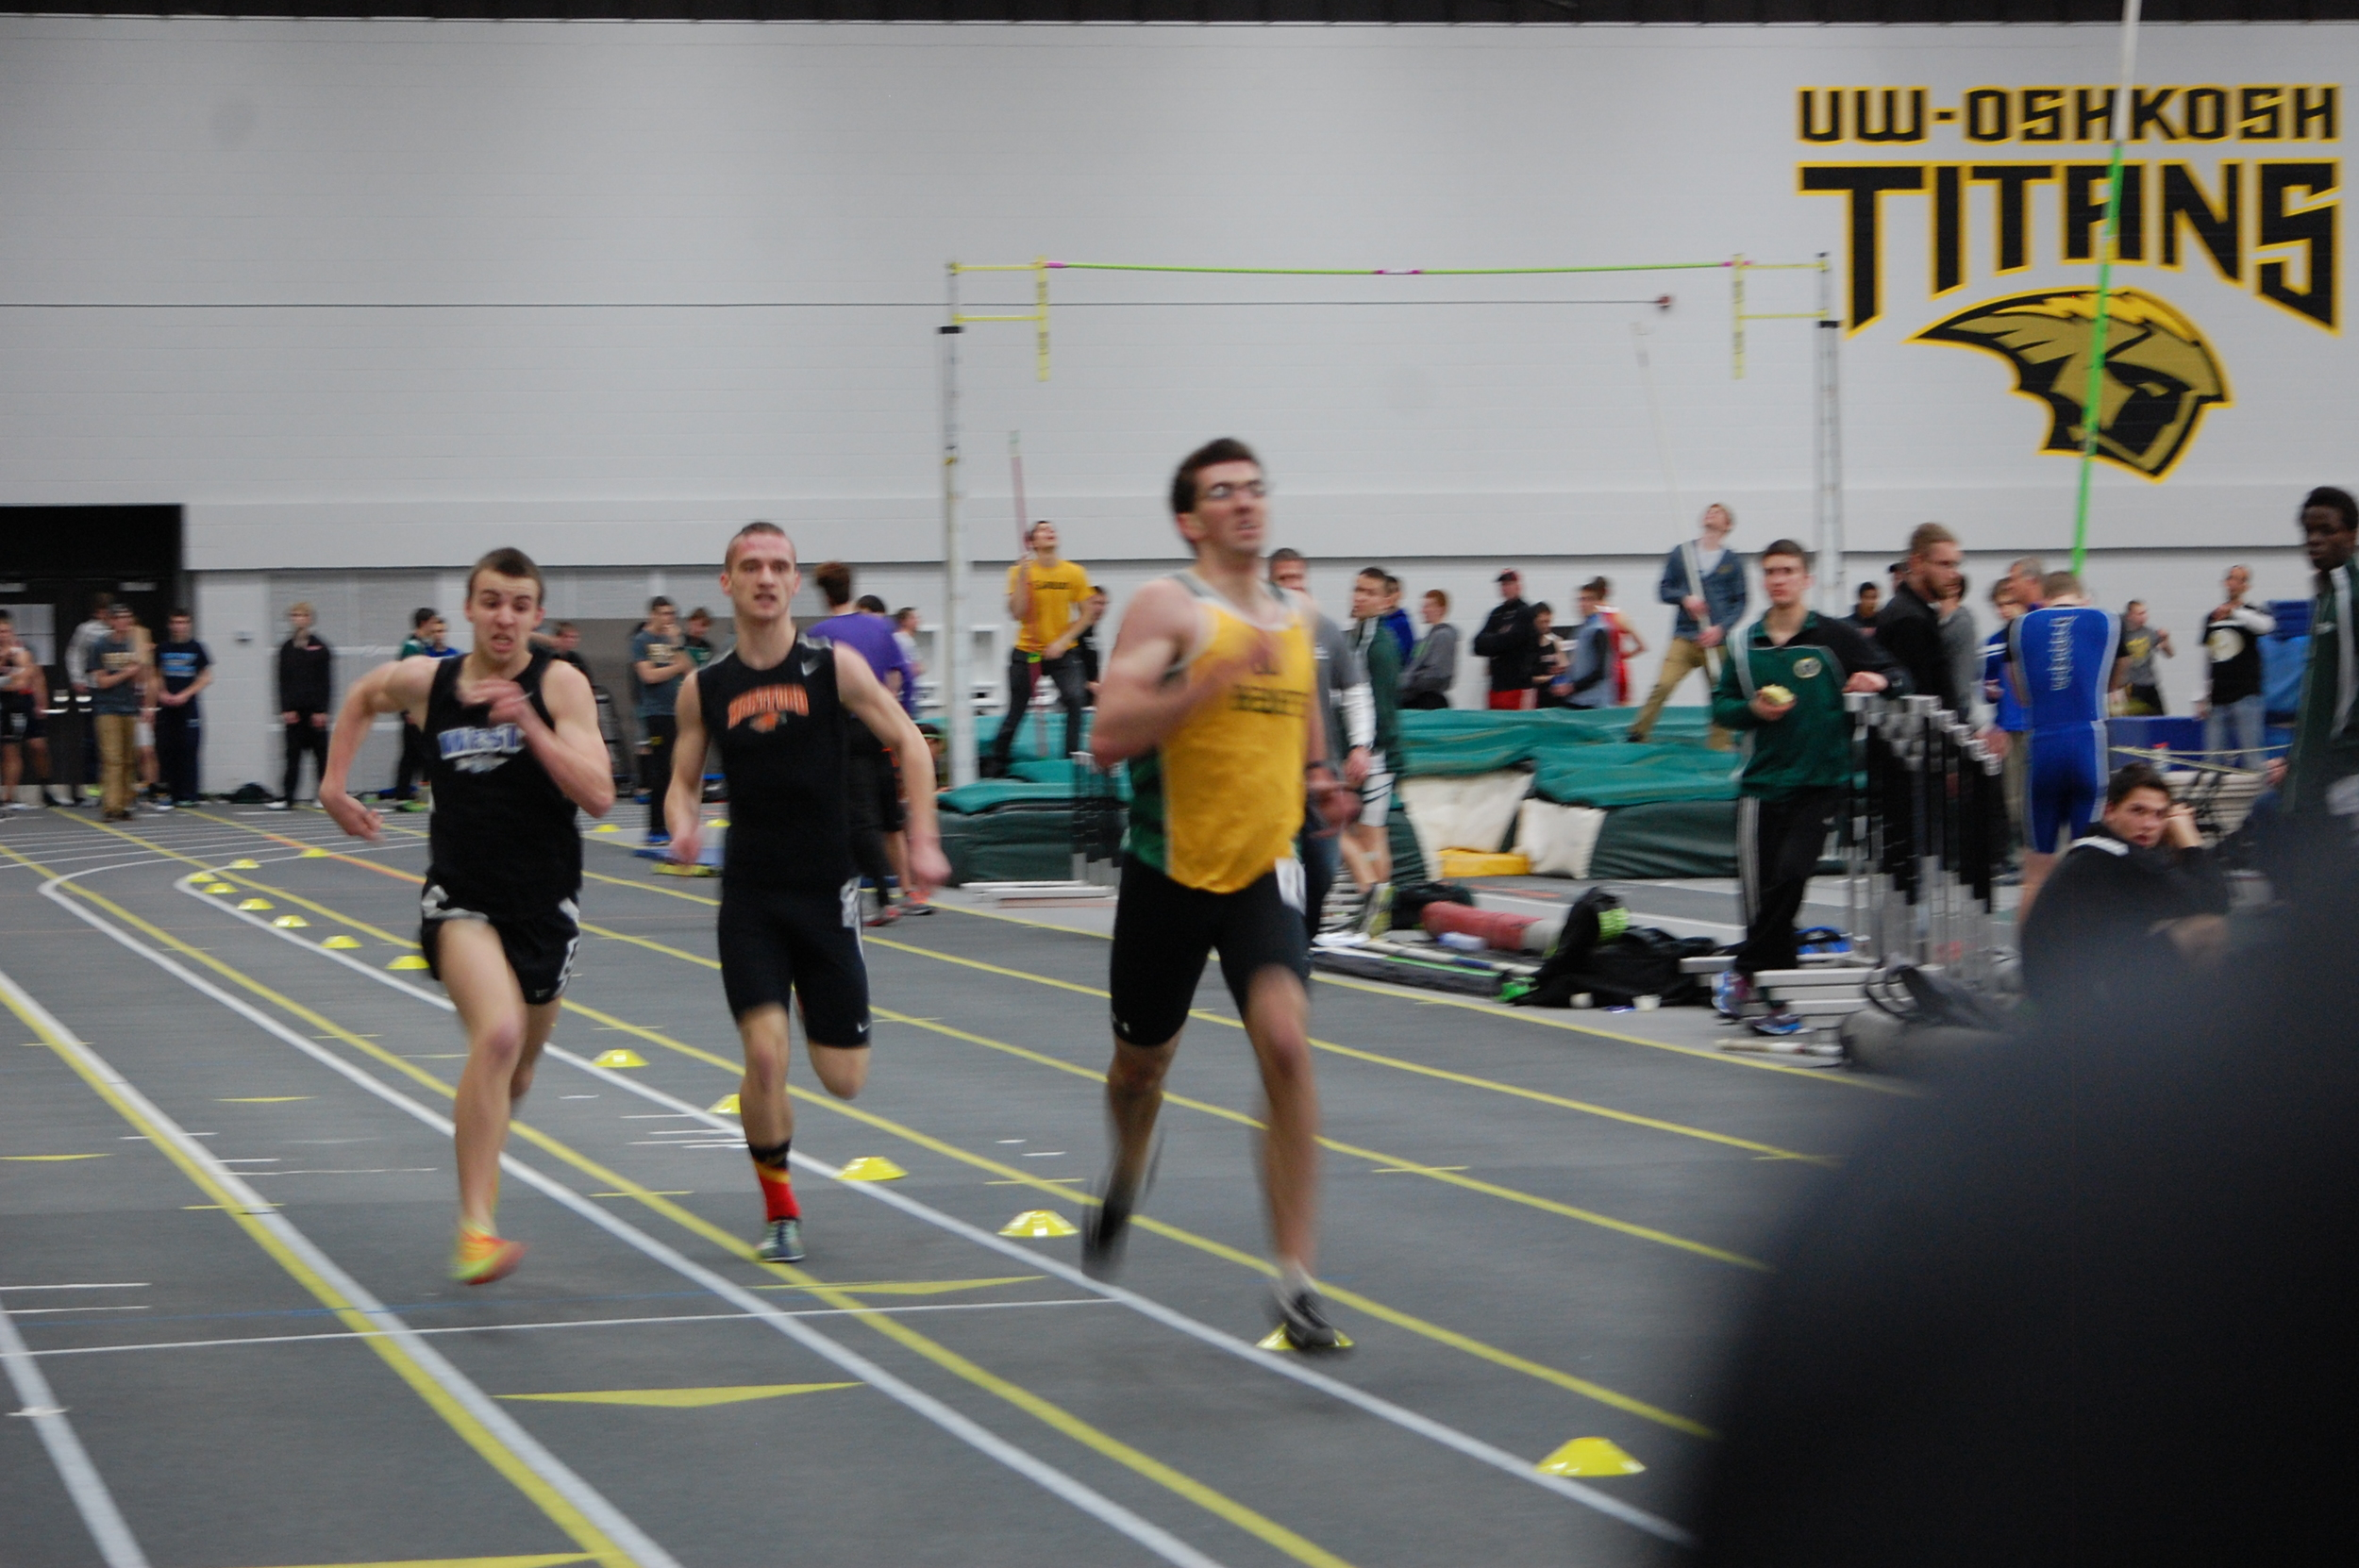 Jake Rost finally passes his opponents and finishes the race strong.